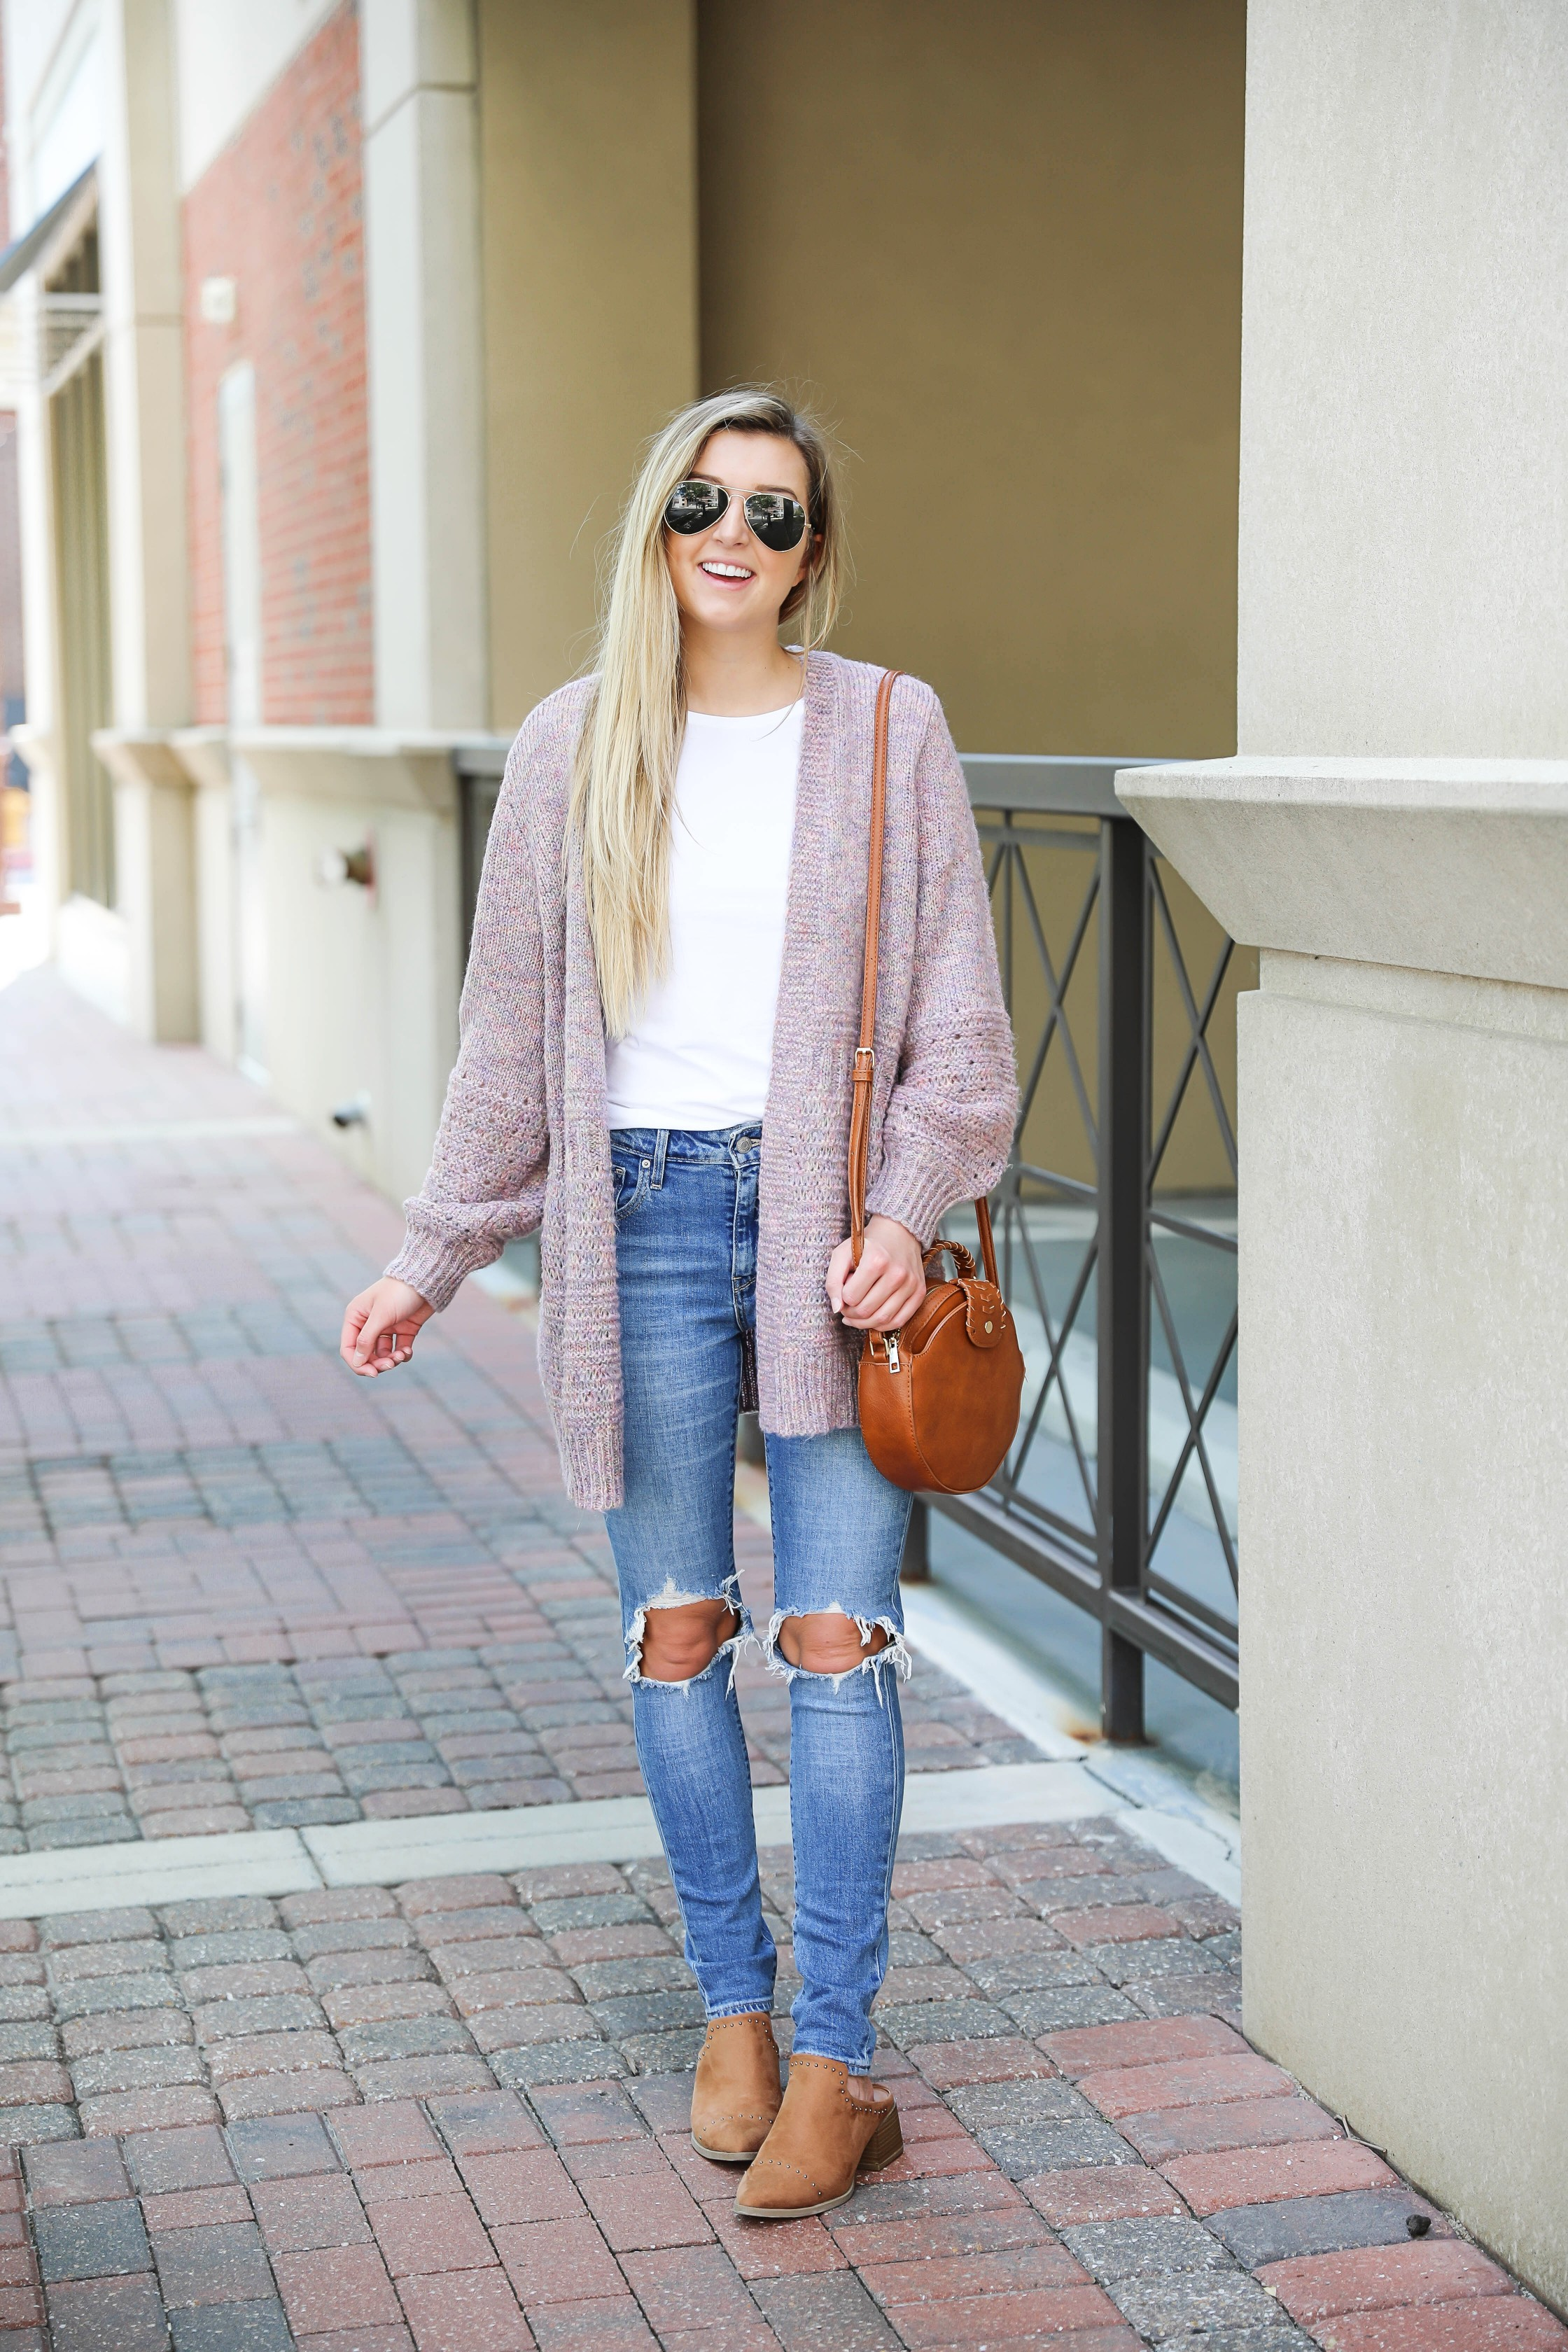 Pink knit cardigan with ripped denim jeans! I paired this look with the cutest pointed toe bootie slides from target! I love Target style, their shoes are so cute! Details on this fall outfit on fashion blog daily dose of charm by lauren lindmark